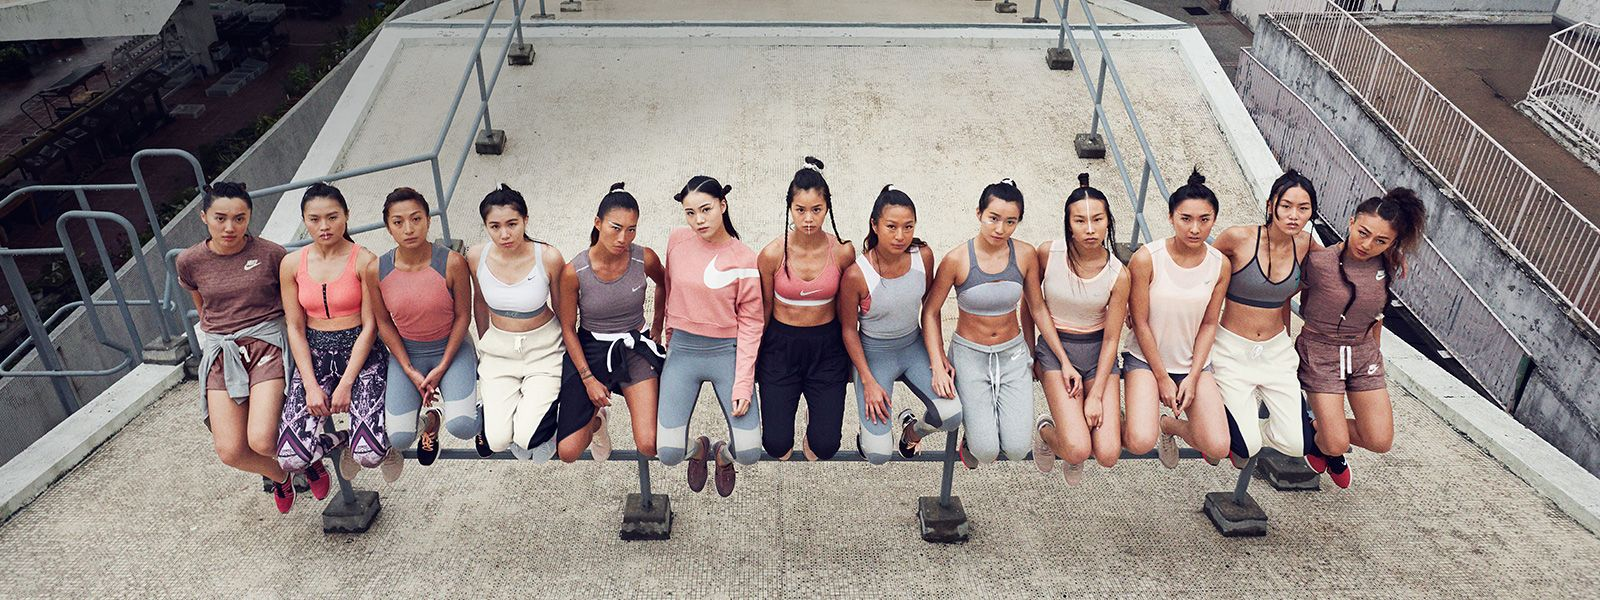 Your new favorite sportswear is in millennial pink